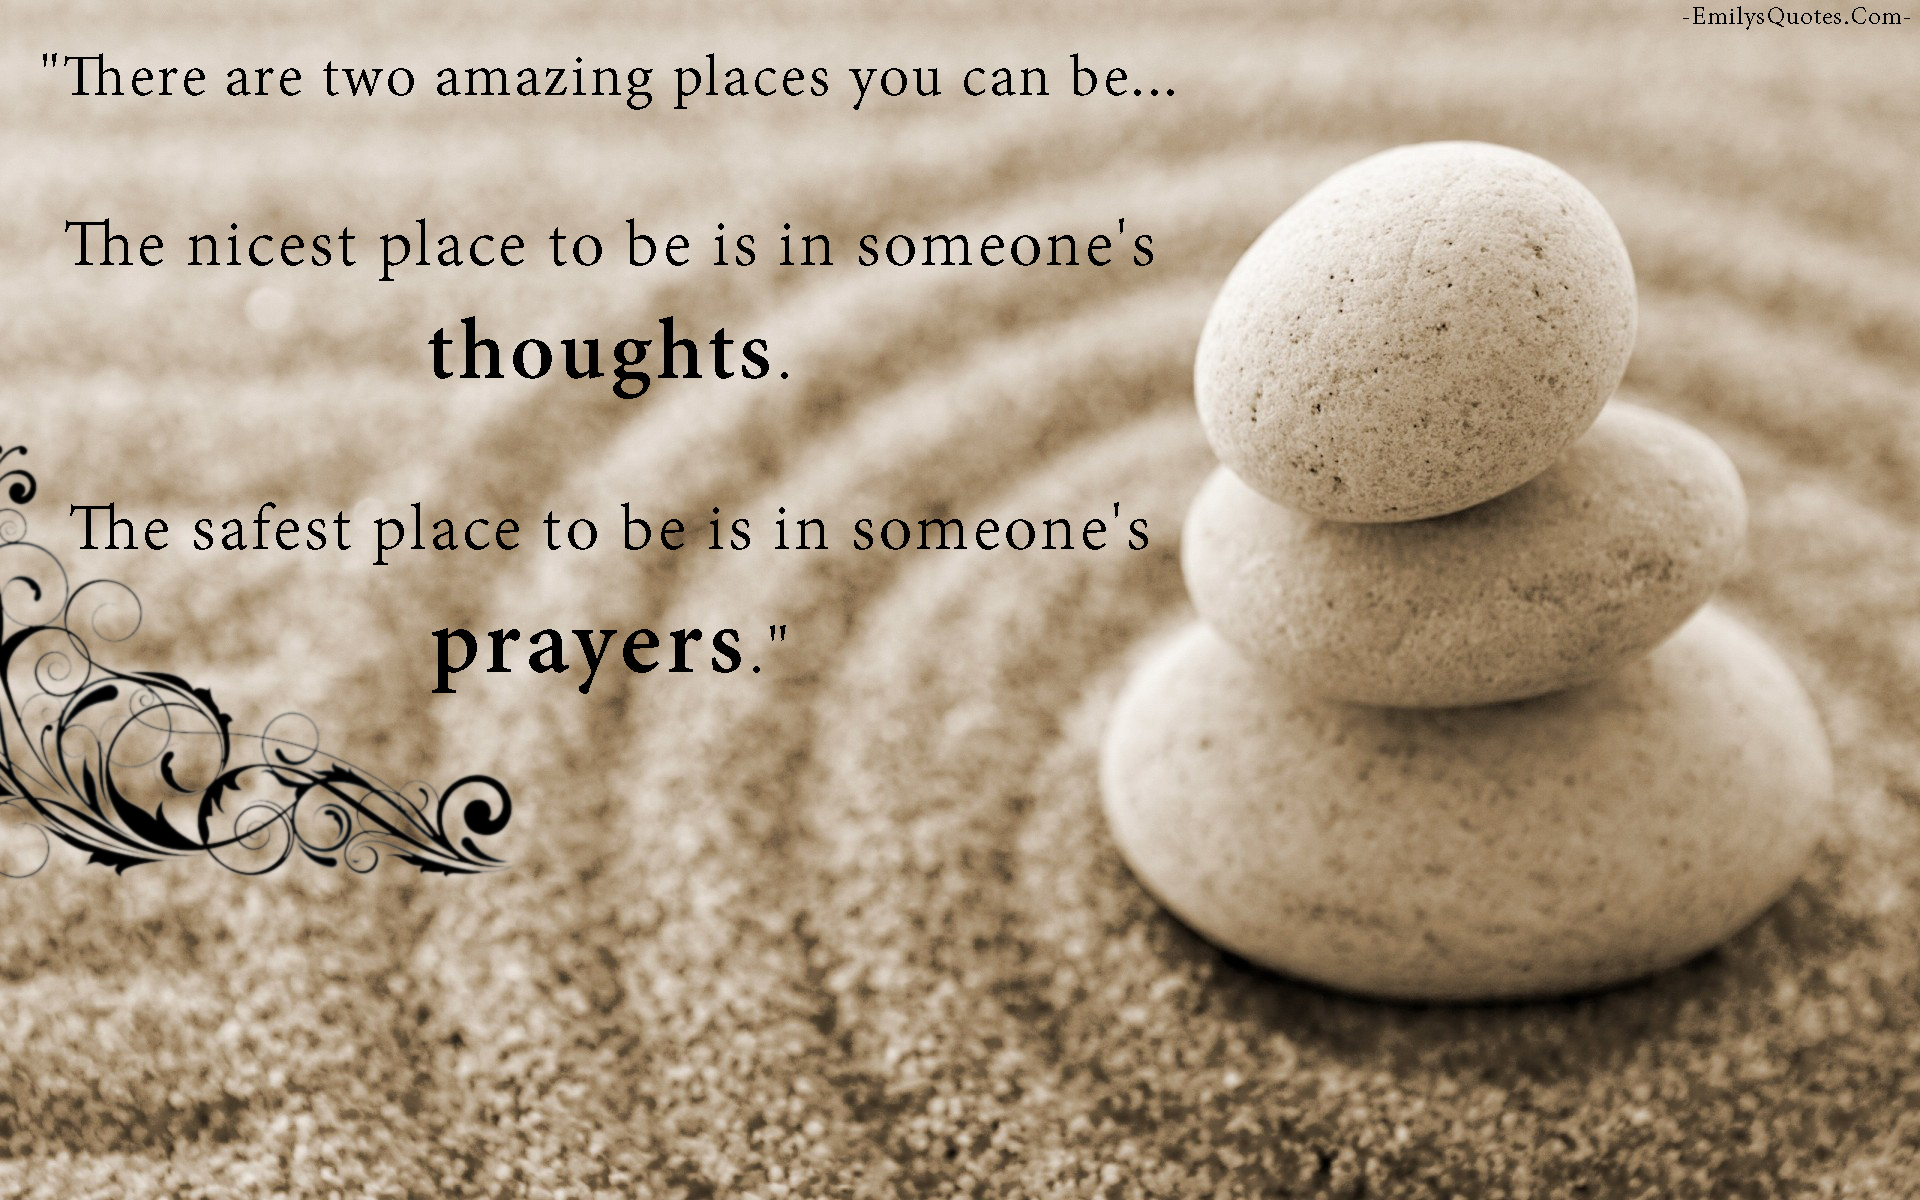 EmilysQuotes.Com - thoughts, safe, prayers, inspirational, positive, unknown